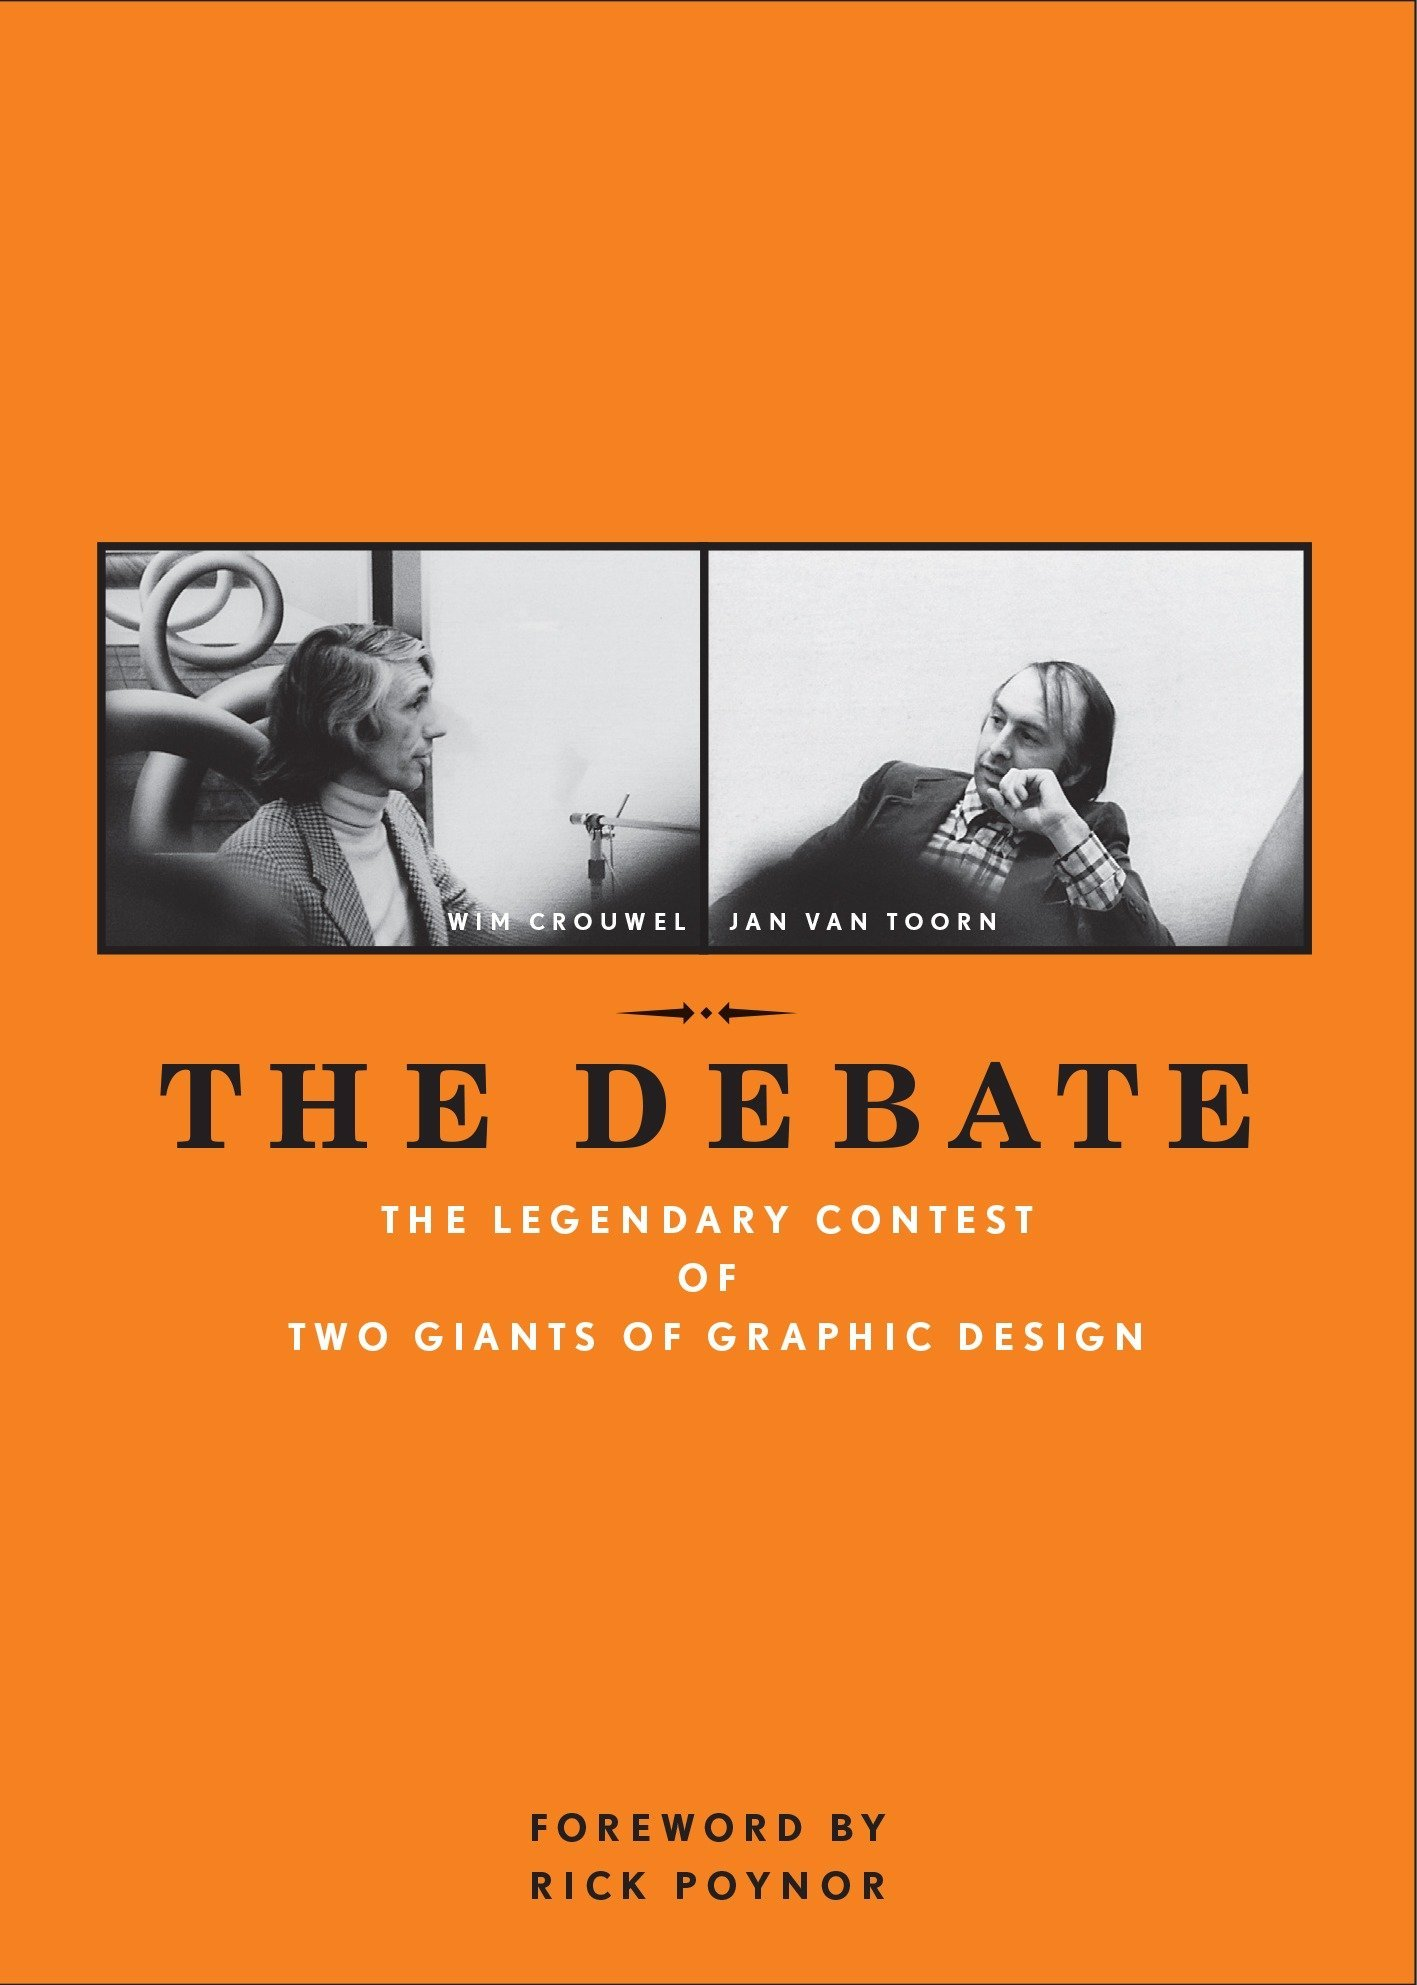 The Debate: The Legendary Contest of Two Giants of Graphic Design by The Monacelli Press